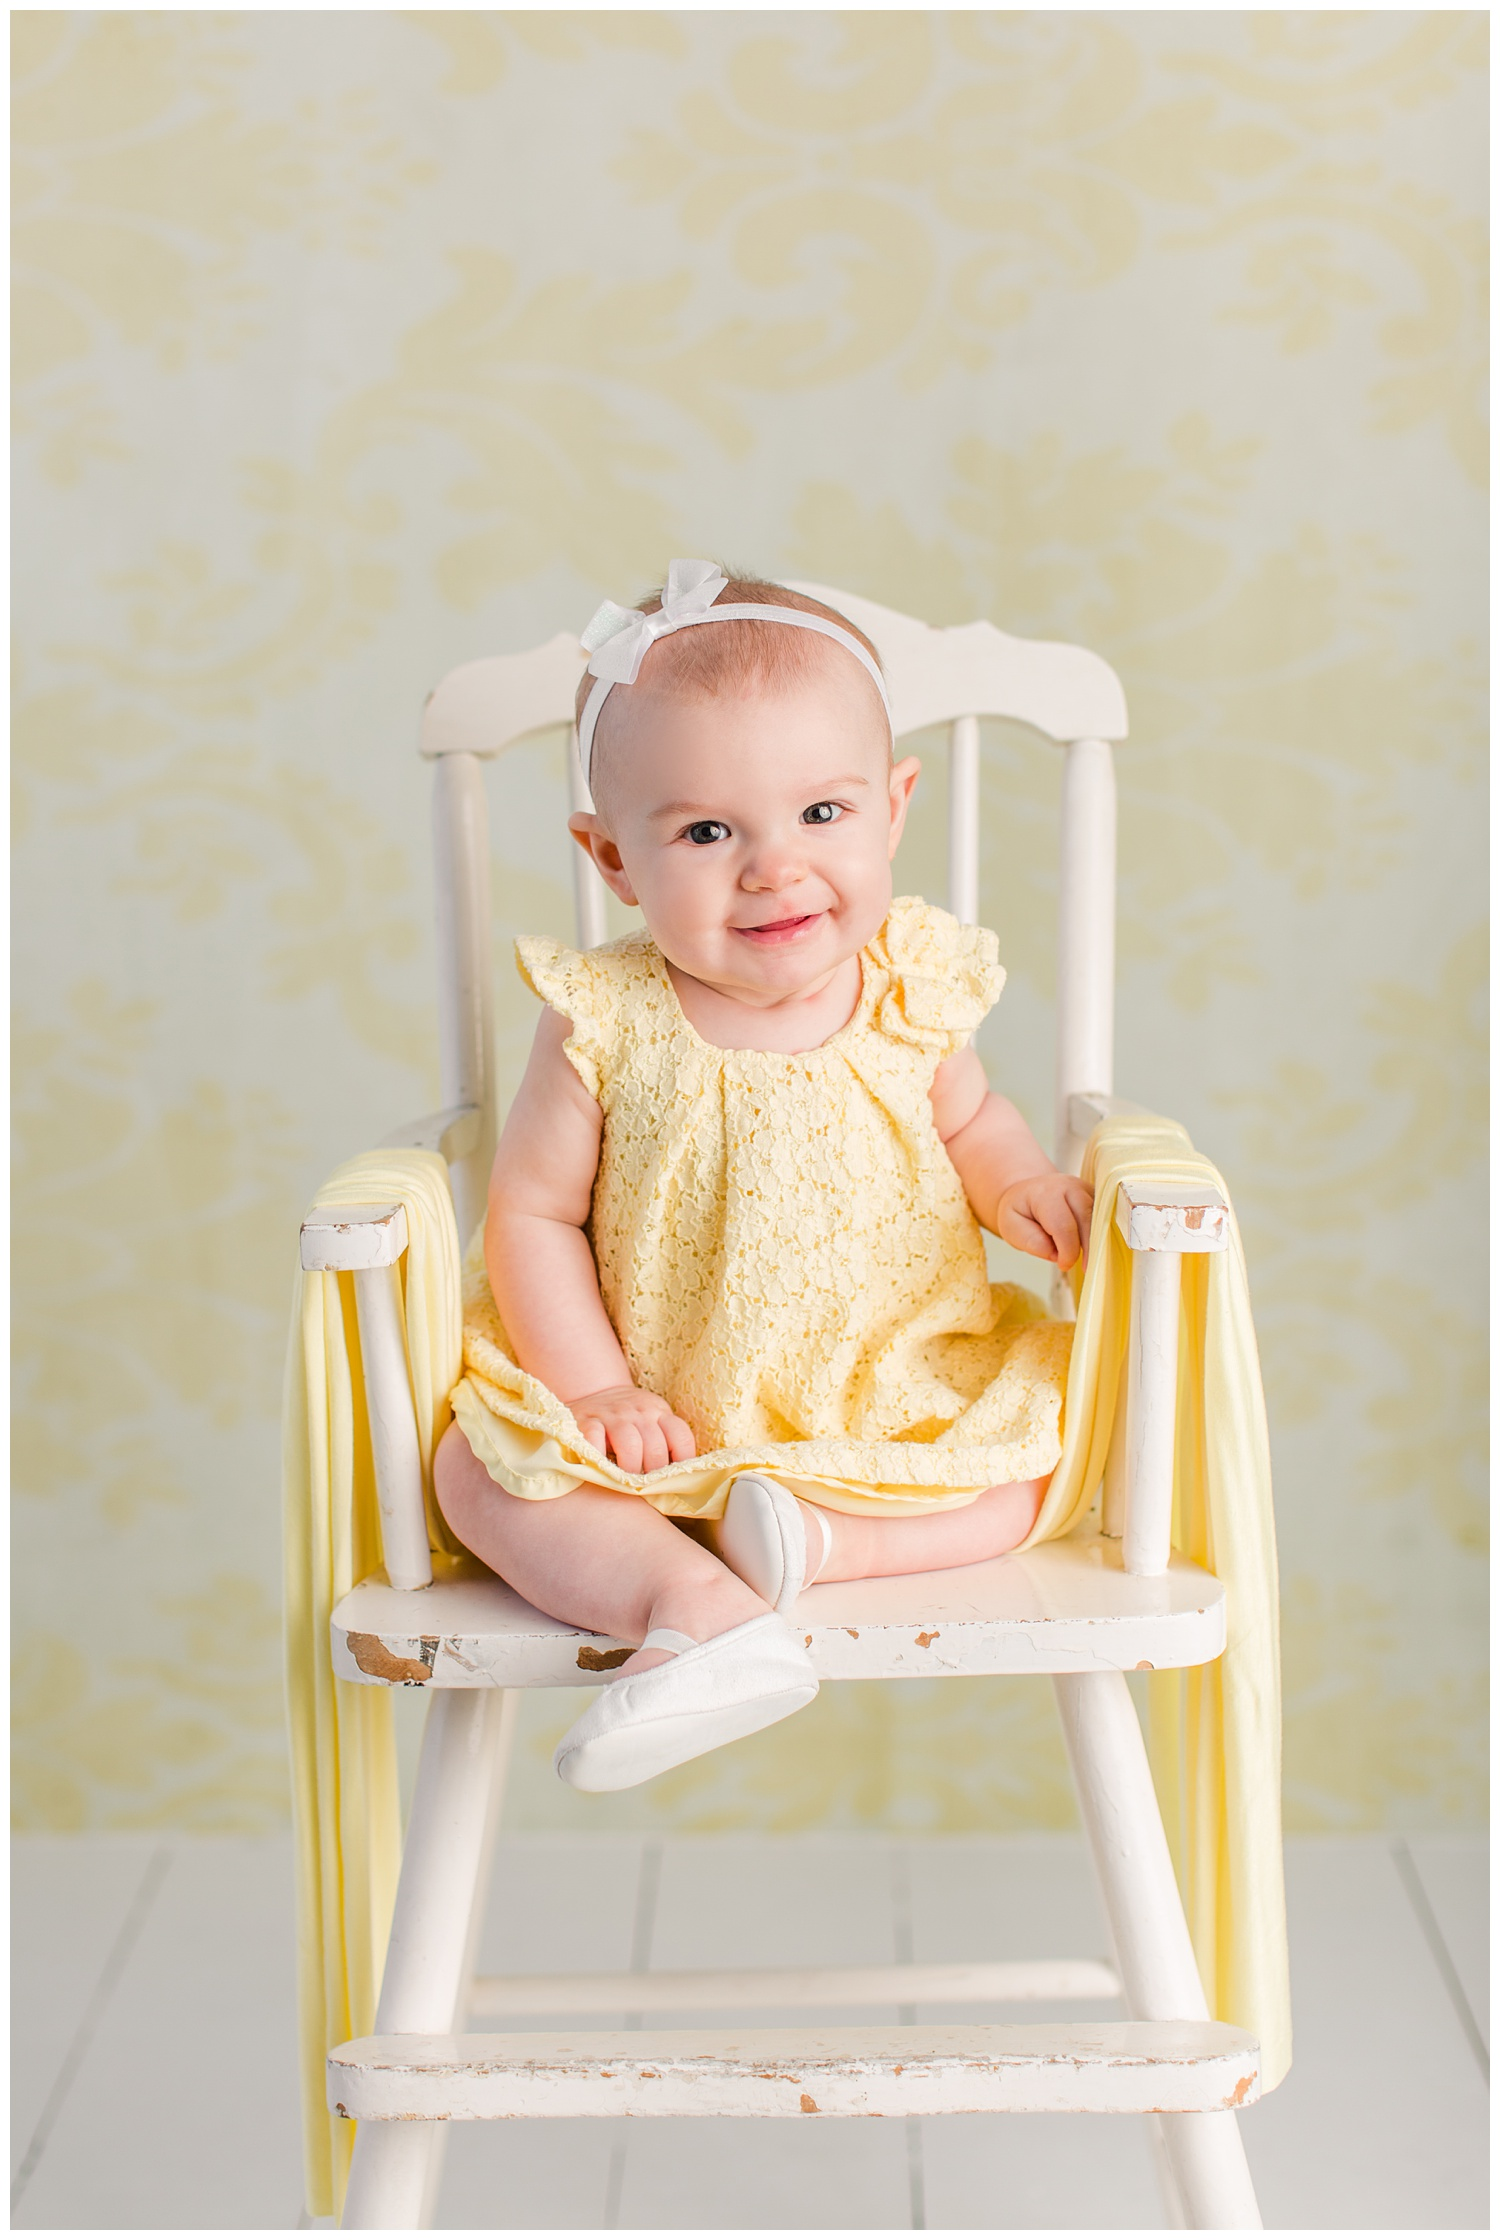 Baby Nora poses in her yellow eyelet Easter dress in an antique high chair.